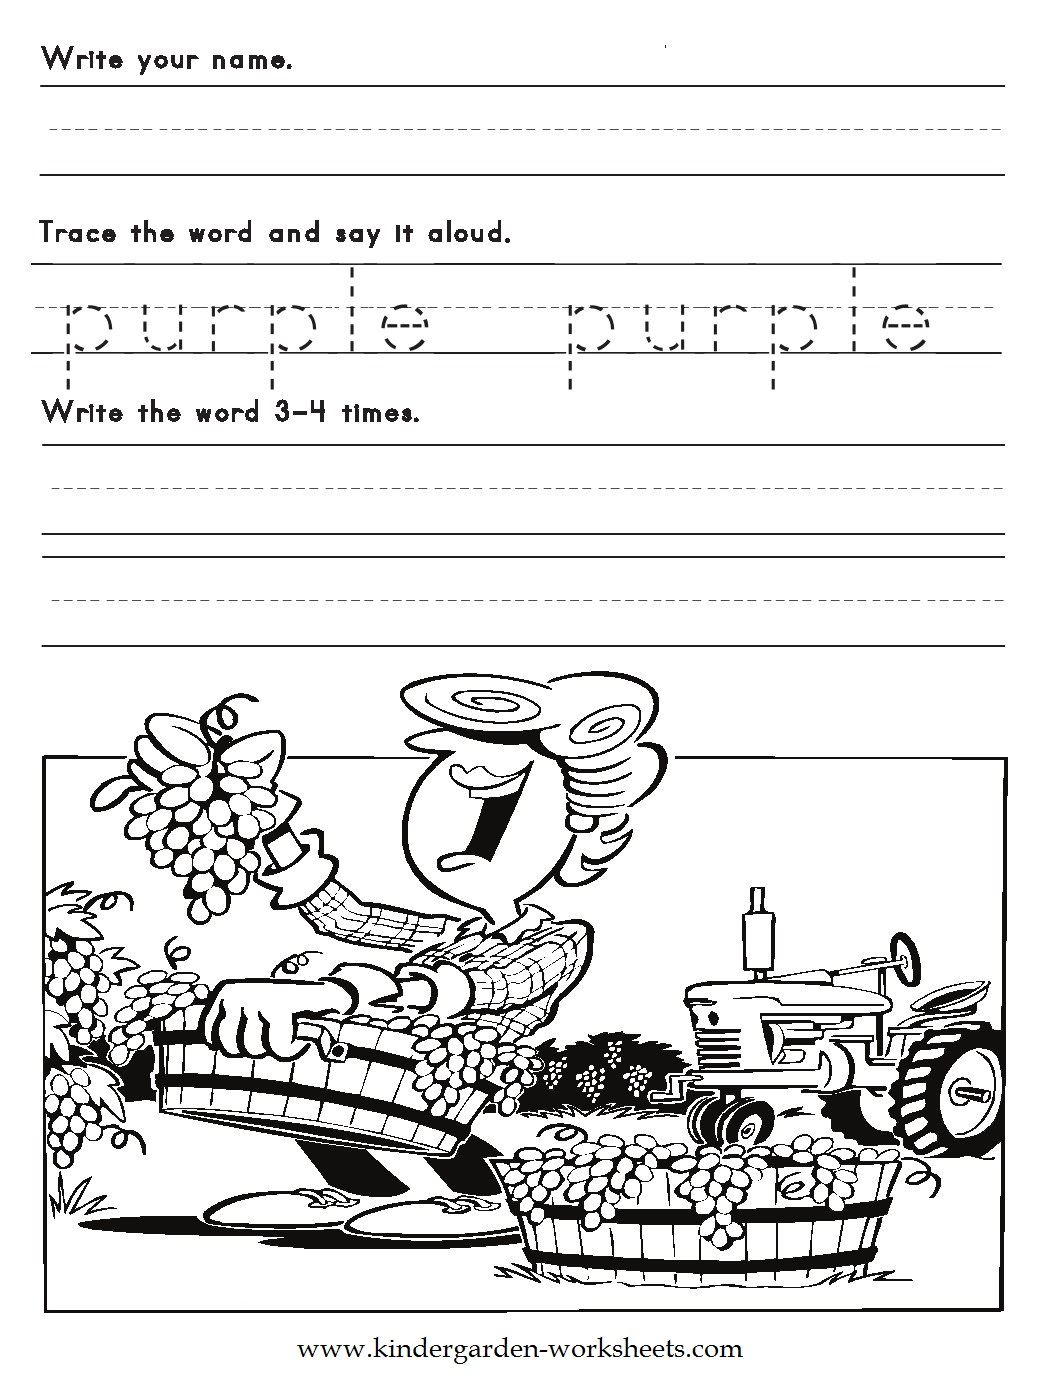 color words worksheets purple - Free Color Word Worksheets